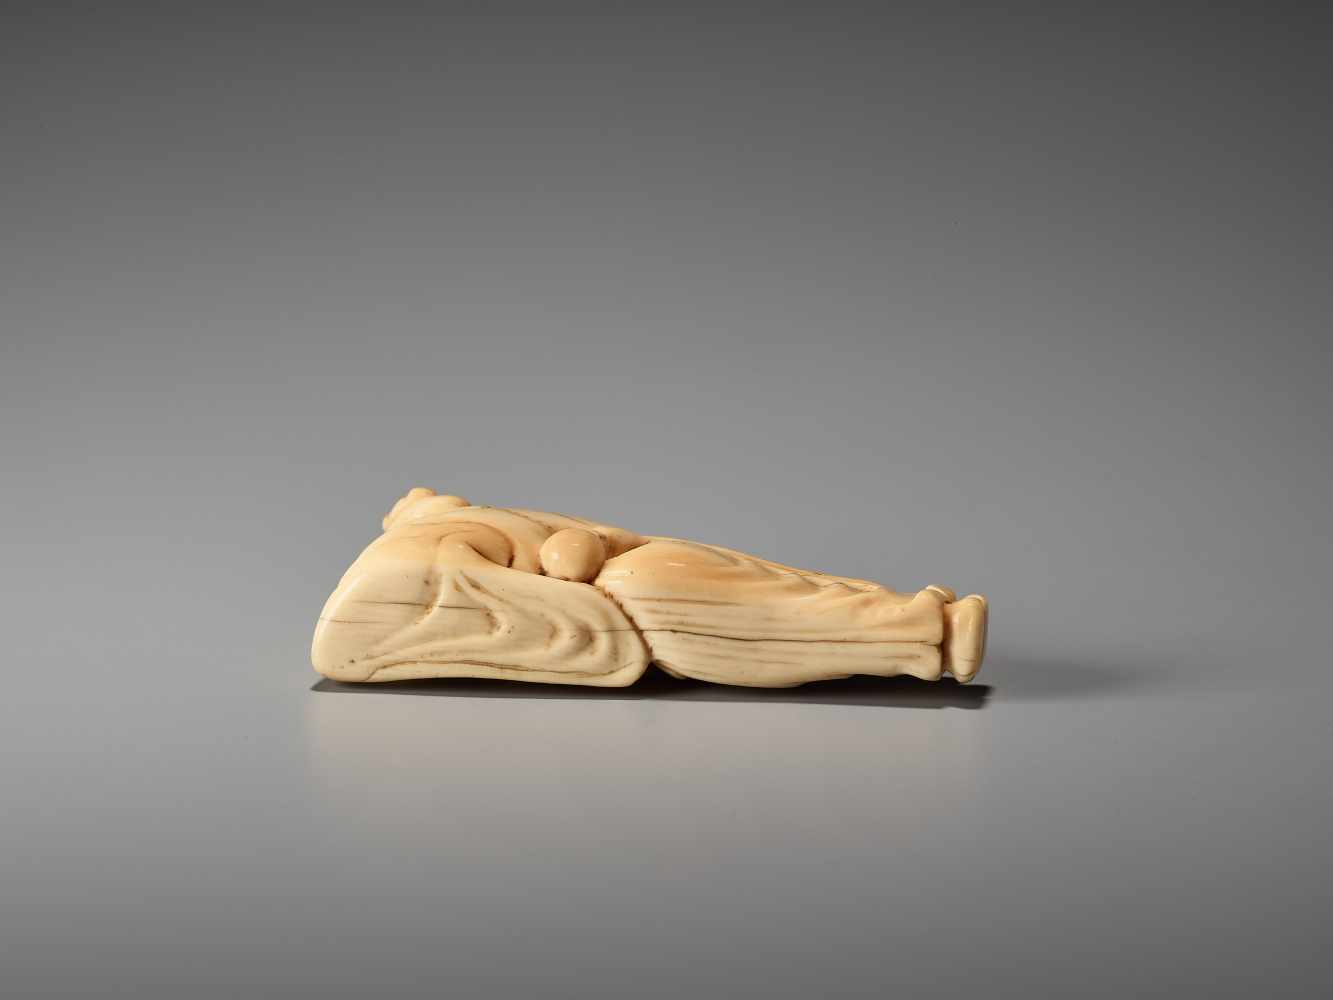 Los 9 - AN IVORY NETSUKE OF A RECLINING CHINESE IMMORTAL WITH A FANUnsigned, ivory netsukeJapan, late 18th